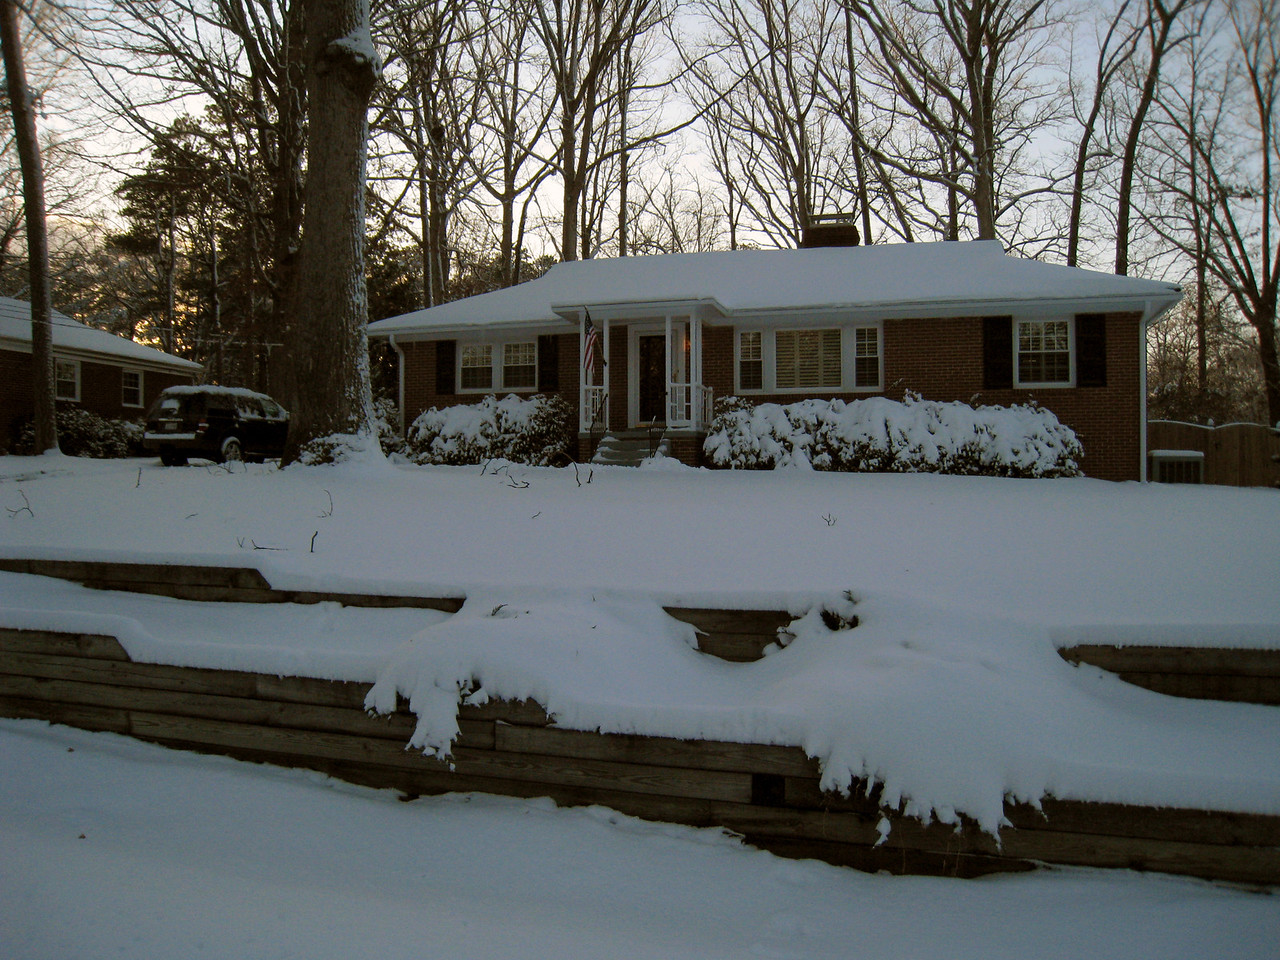 3/2/2009 - first snow at the house.